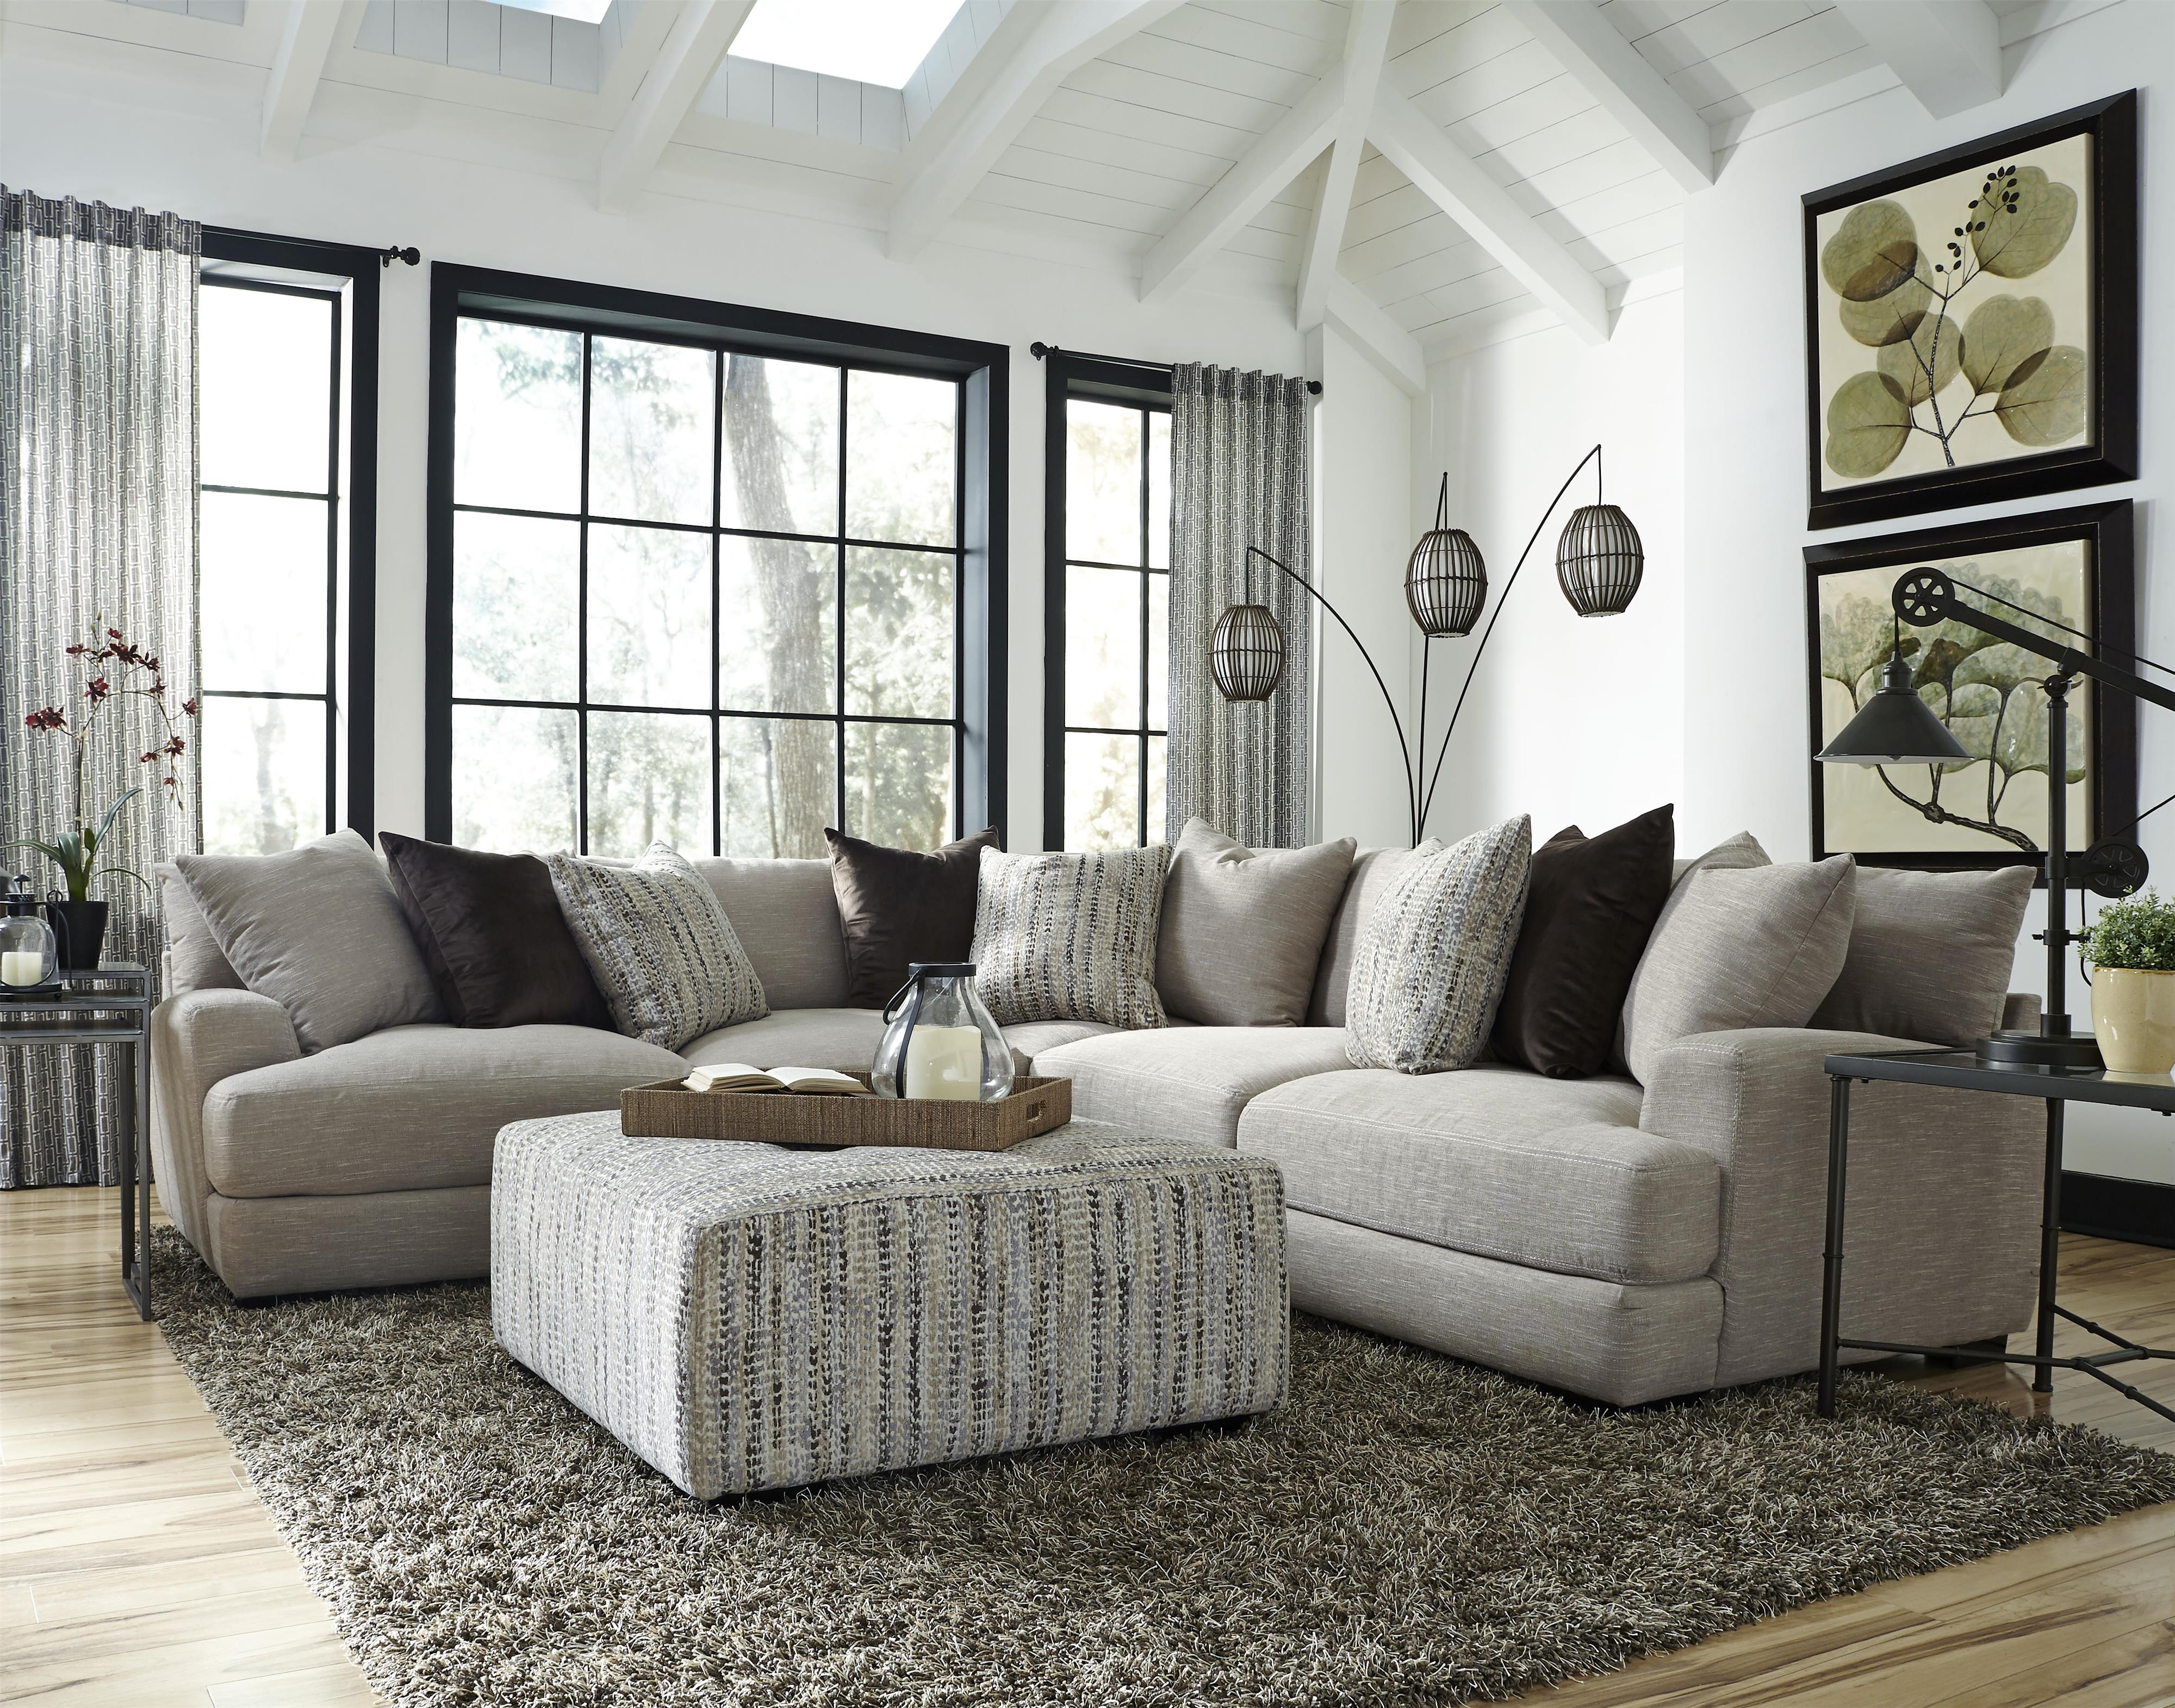 Sectional Sofas | Jackson, Pearl, Madison, Ridgeland, Flowood Intended For Jackson Ms Sectional Sofas (View 9 of 10)